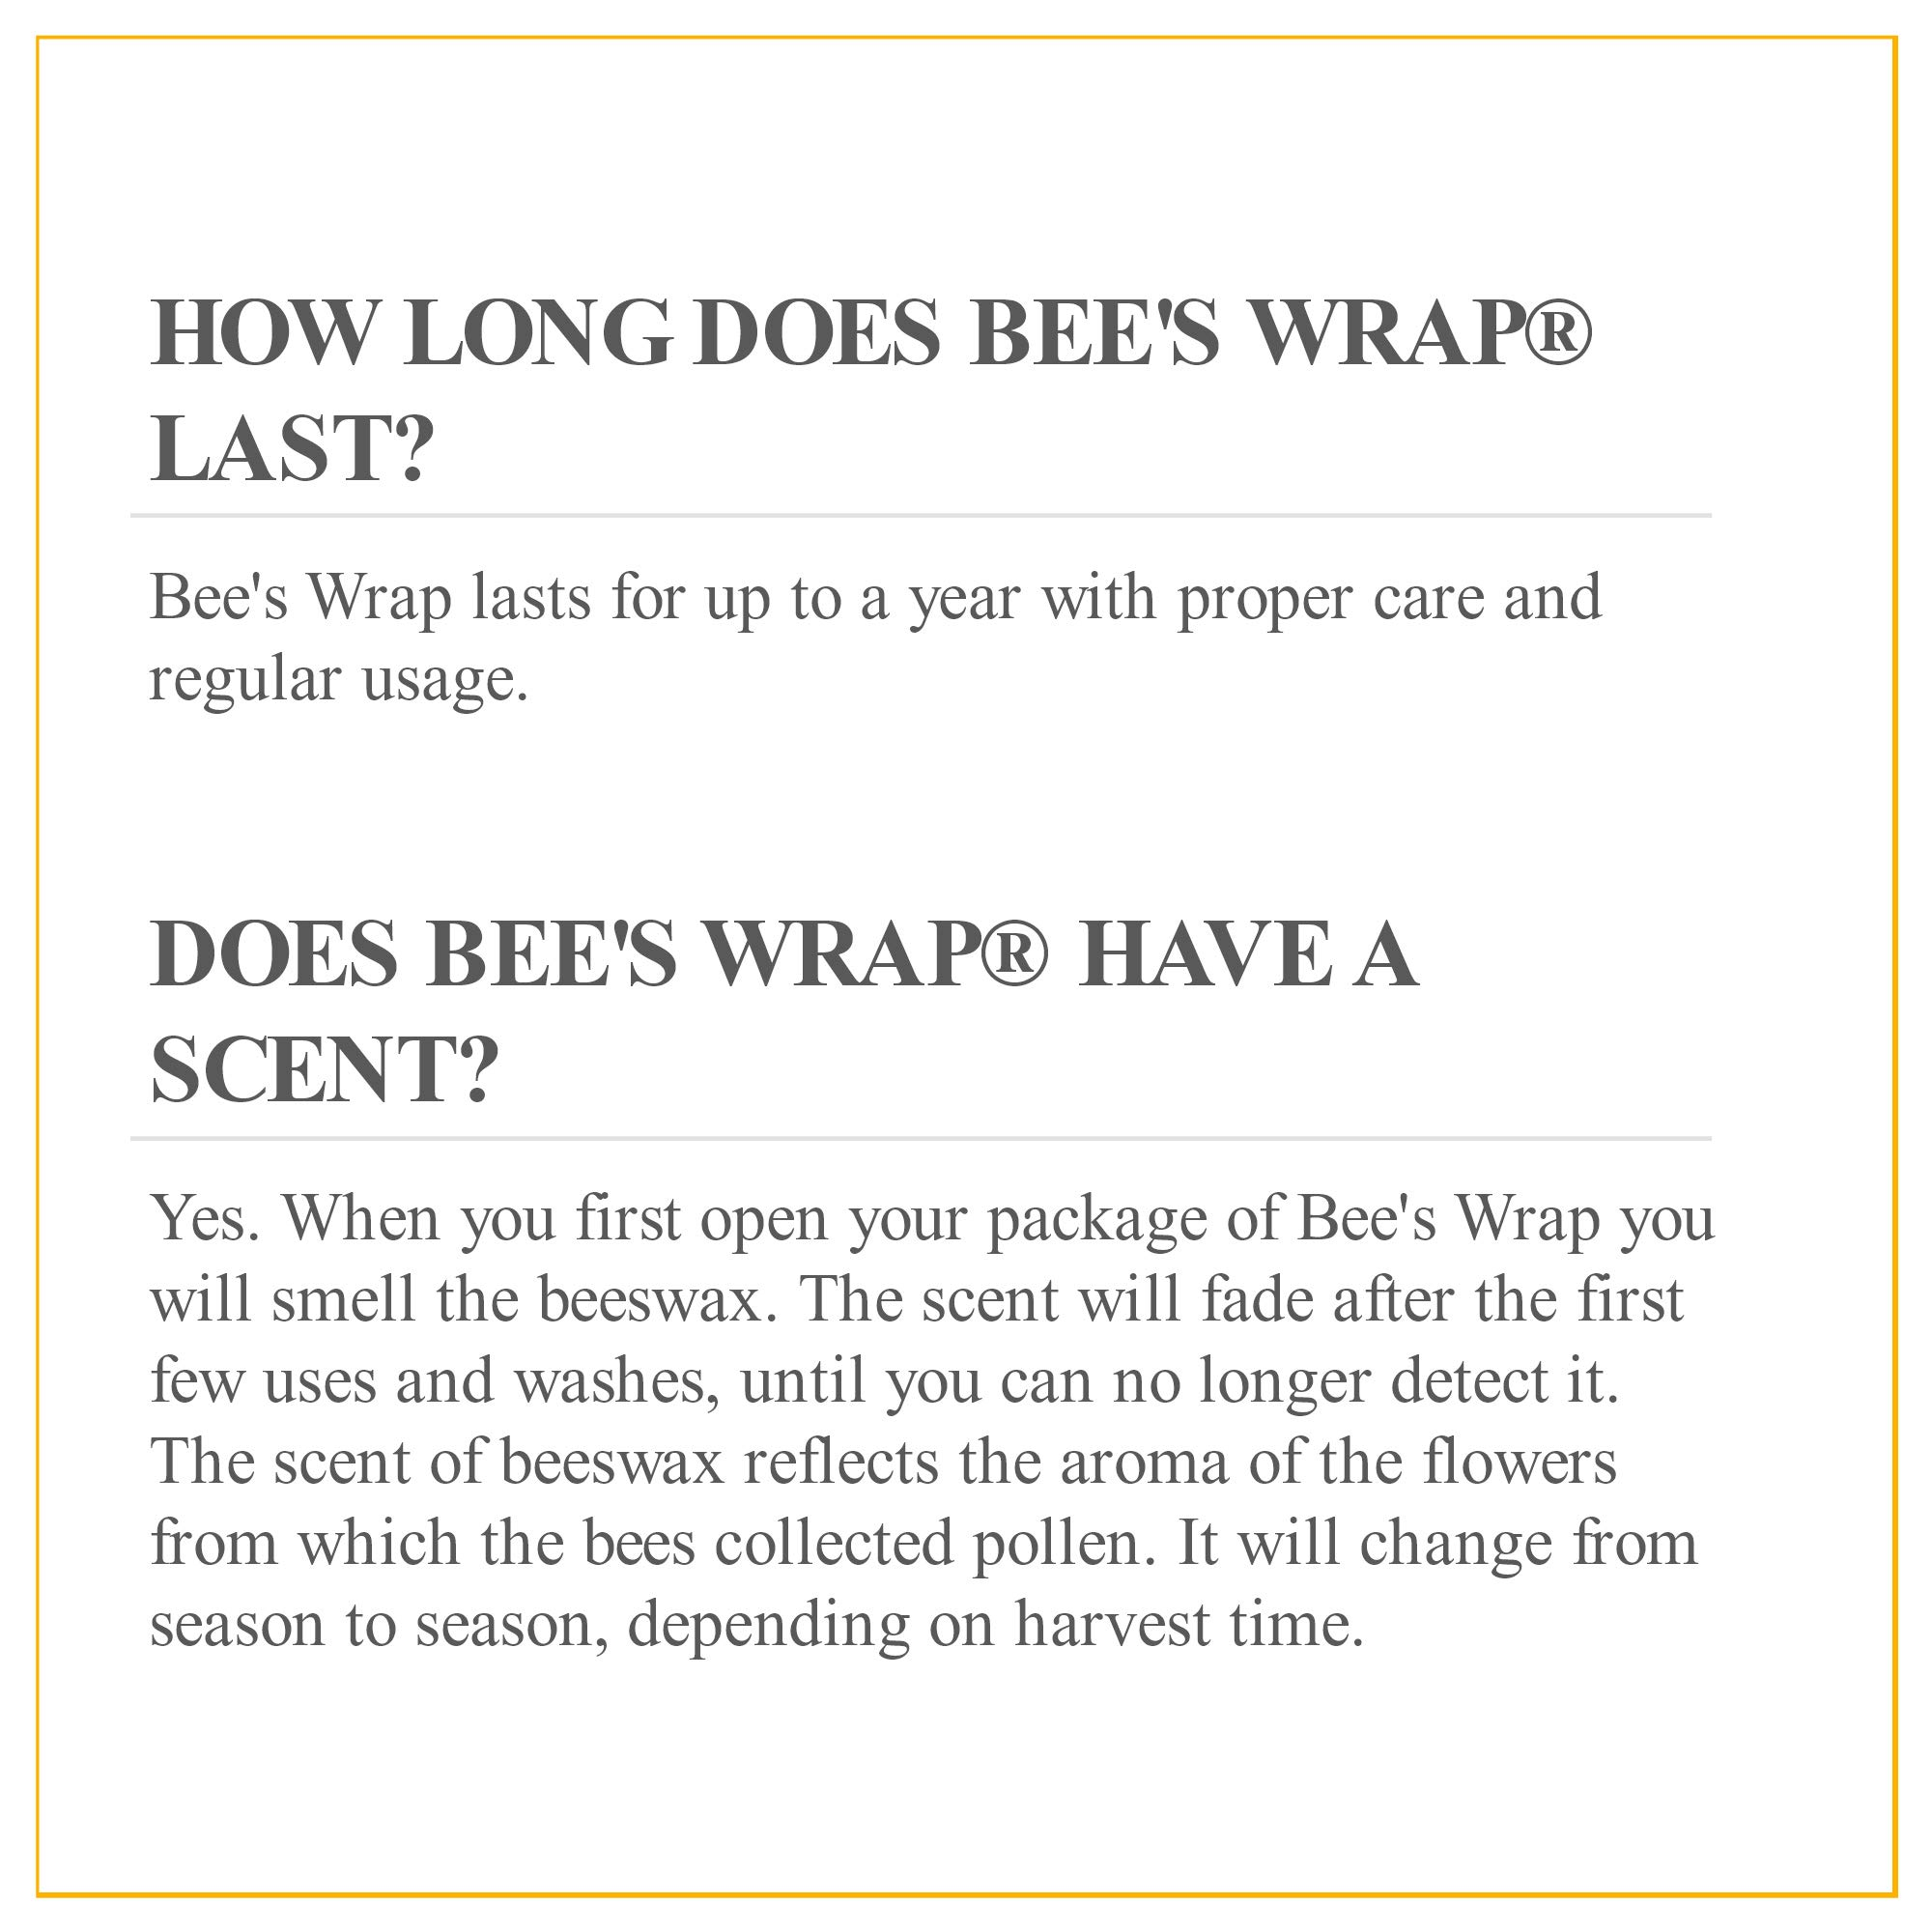 Bee's Wrap Assorted 3 Pack, Eco Friendly Reusable Food Wraps, Sustainable Plastic Free Food Storage, Honeycomb Print - 1 Small, 1 Medium, 1 Large by Bee's Wrap (Image #6)